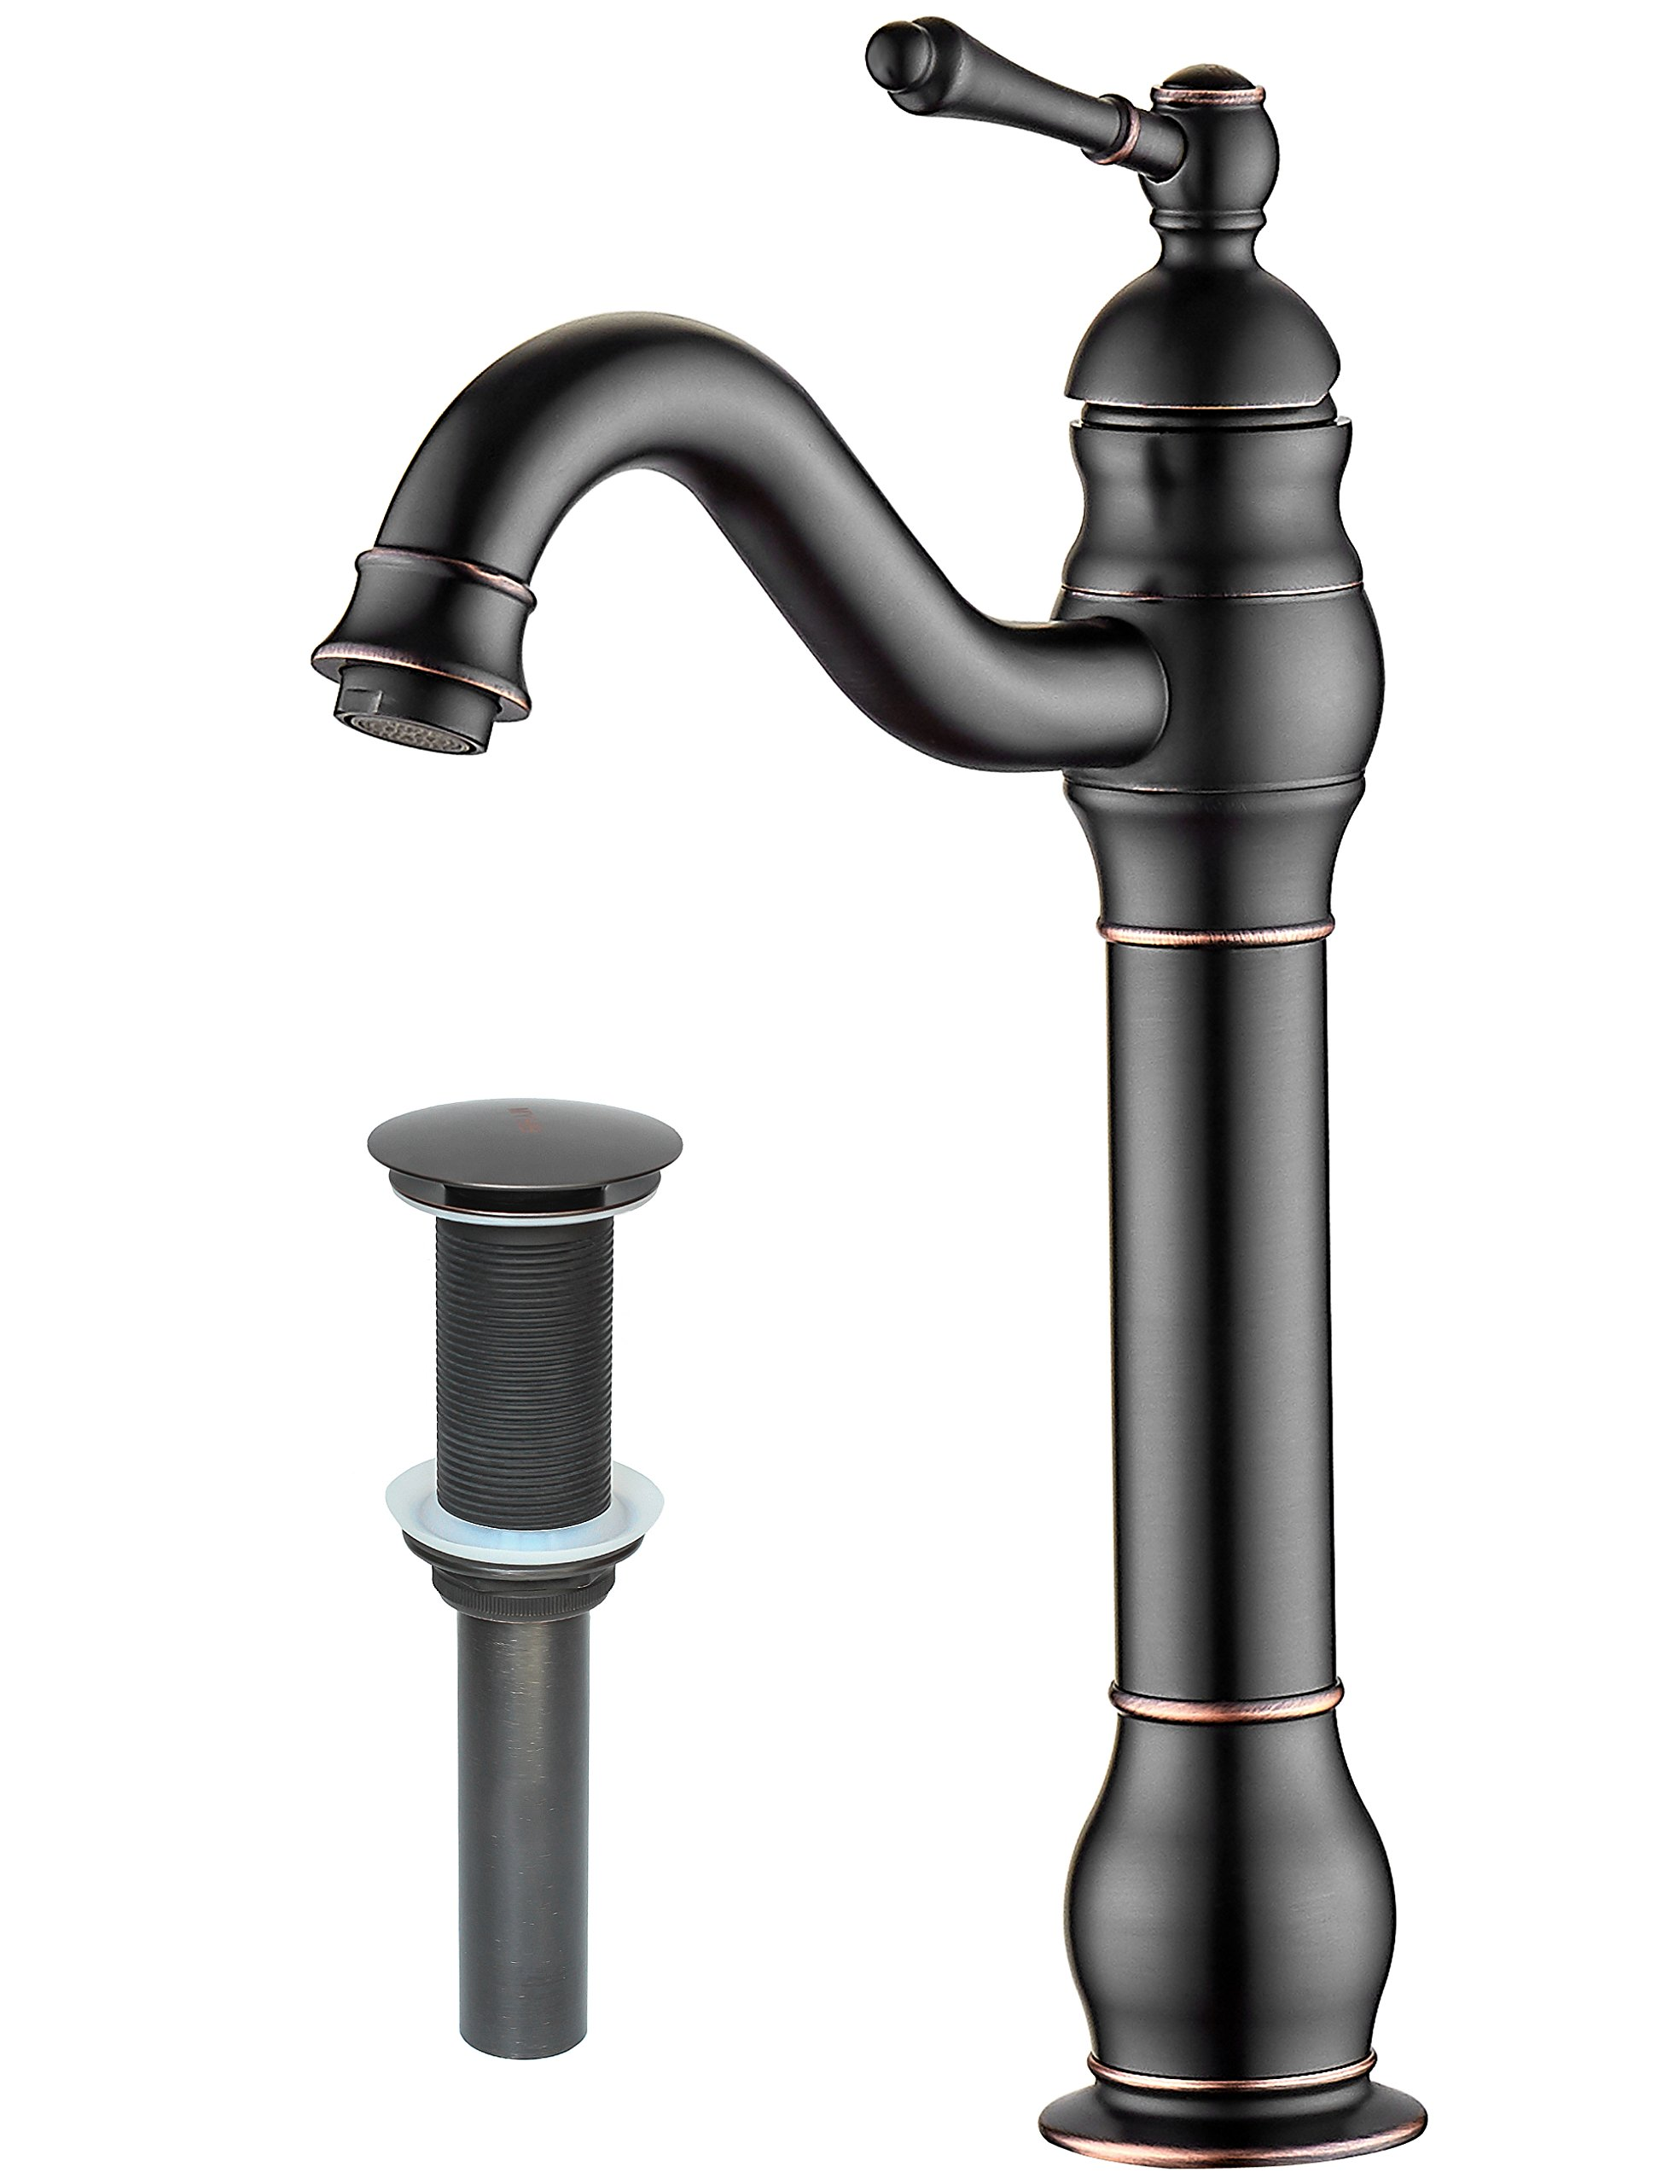 MYHB 360° Swivel Oil Rubbed Bronze Bathroom Vessel Sink Faucet with Brass POP UP Drain Single Handle Lever Bowl Tap Mixer by MYHB